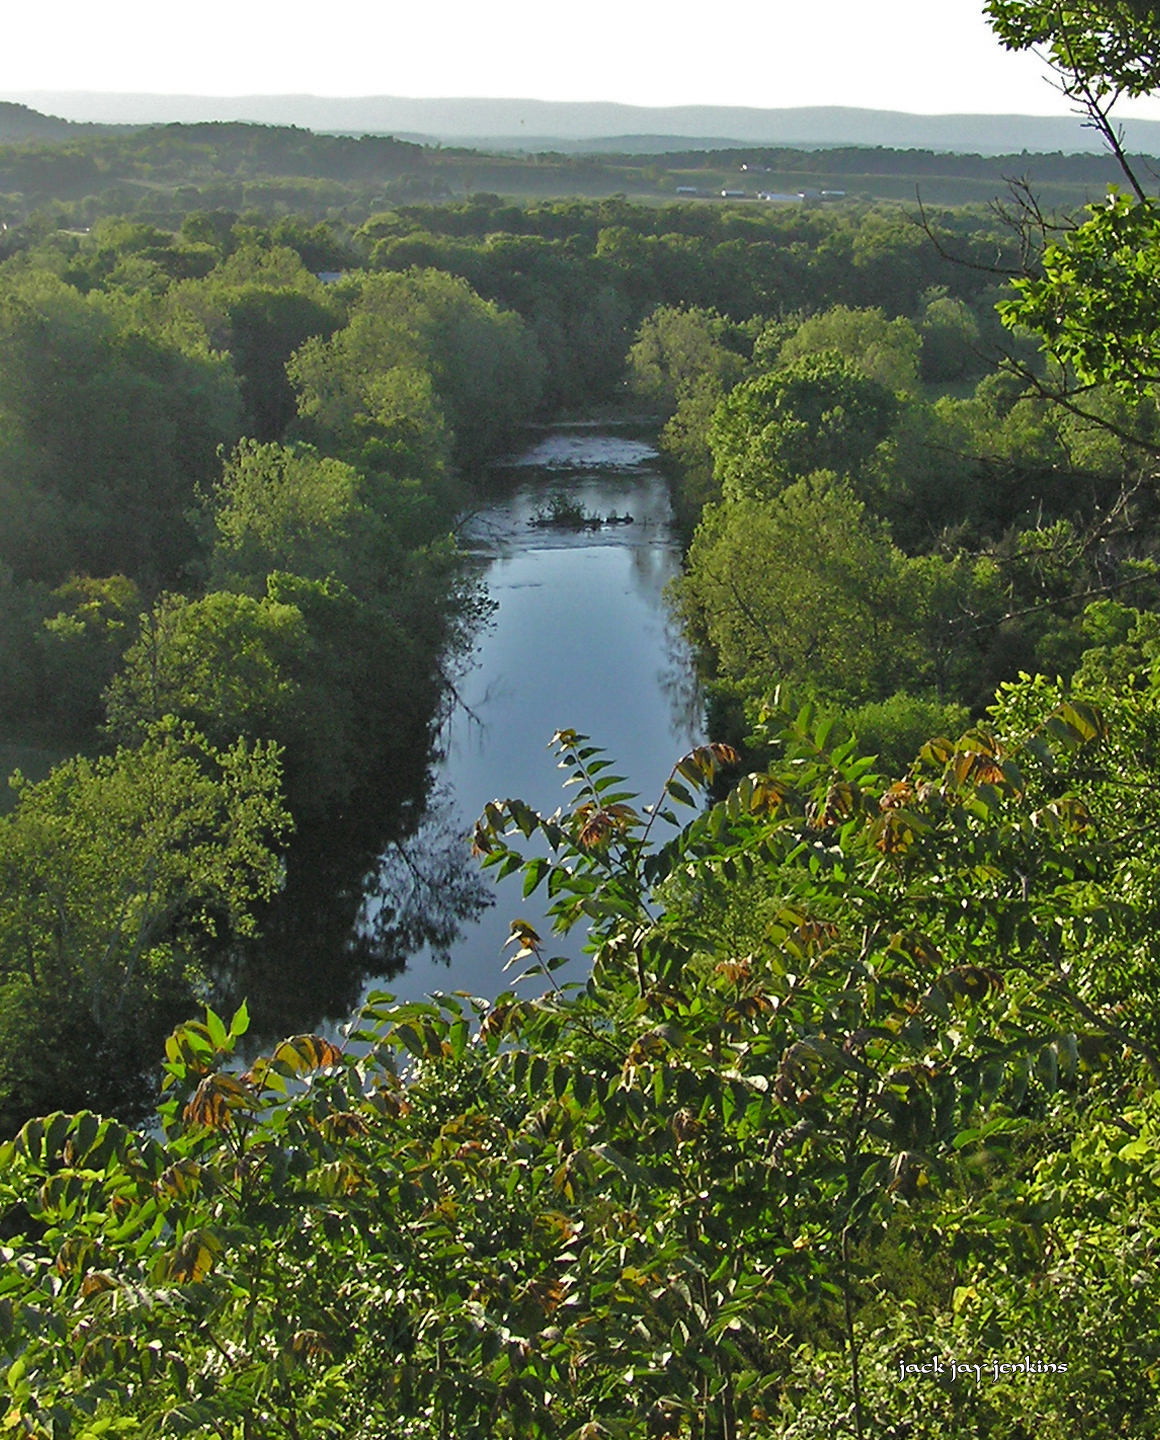 The North Fork of the Shenandoah River will eventually join the south fork at Front Royal, Virginia, and flow into the Potomac River at Harpers Ferry, West Virginia.